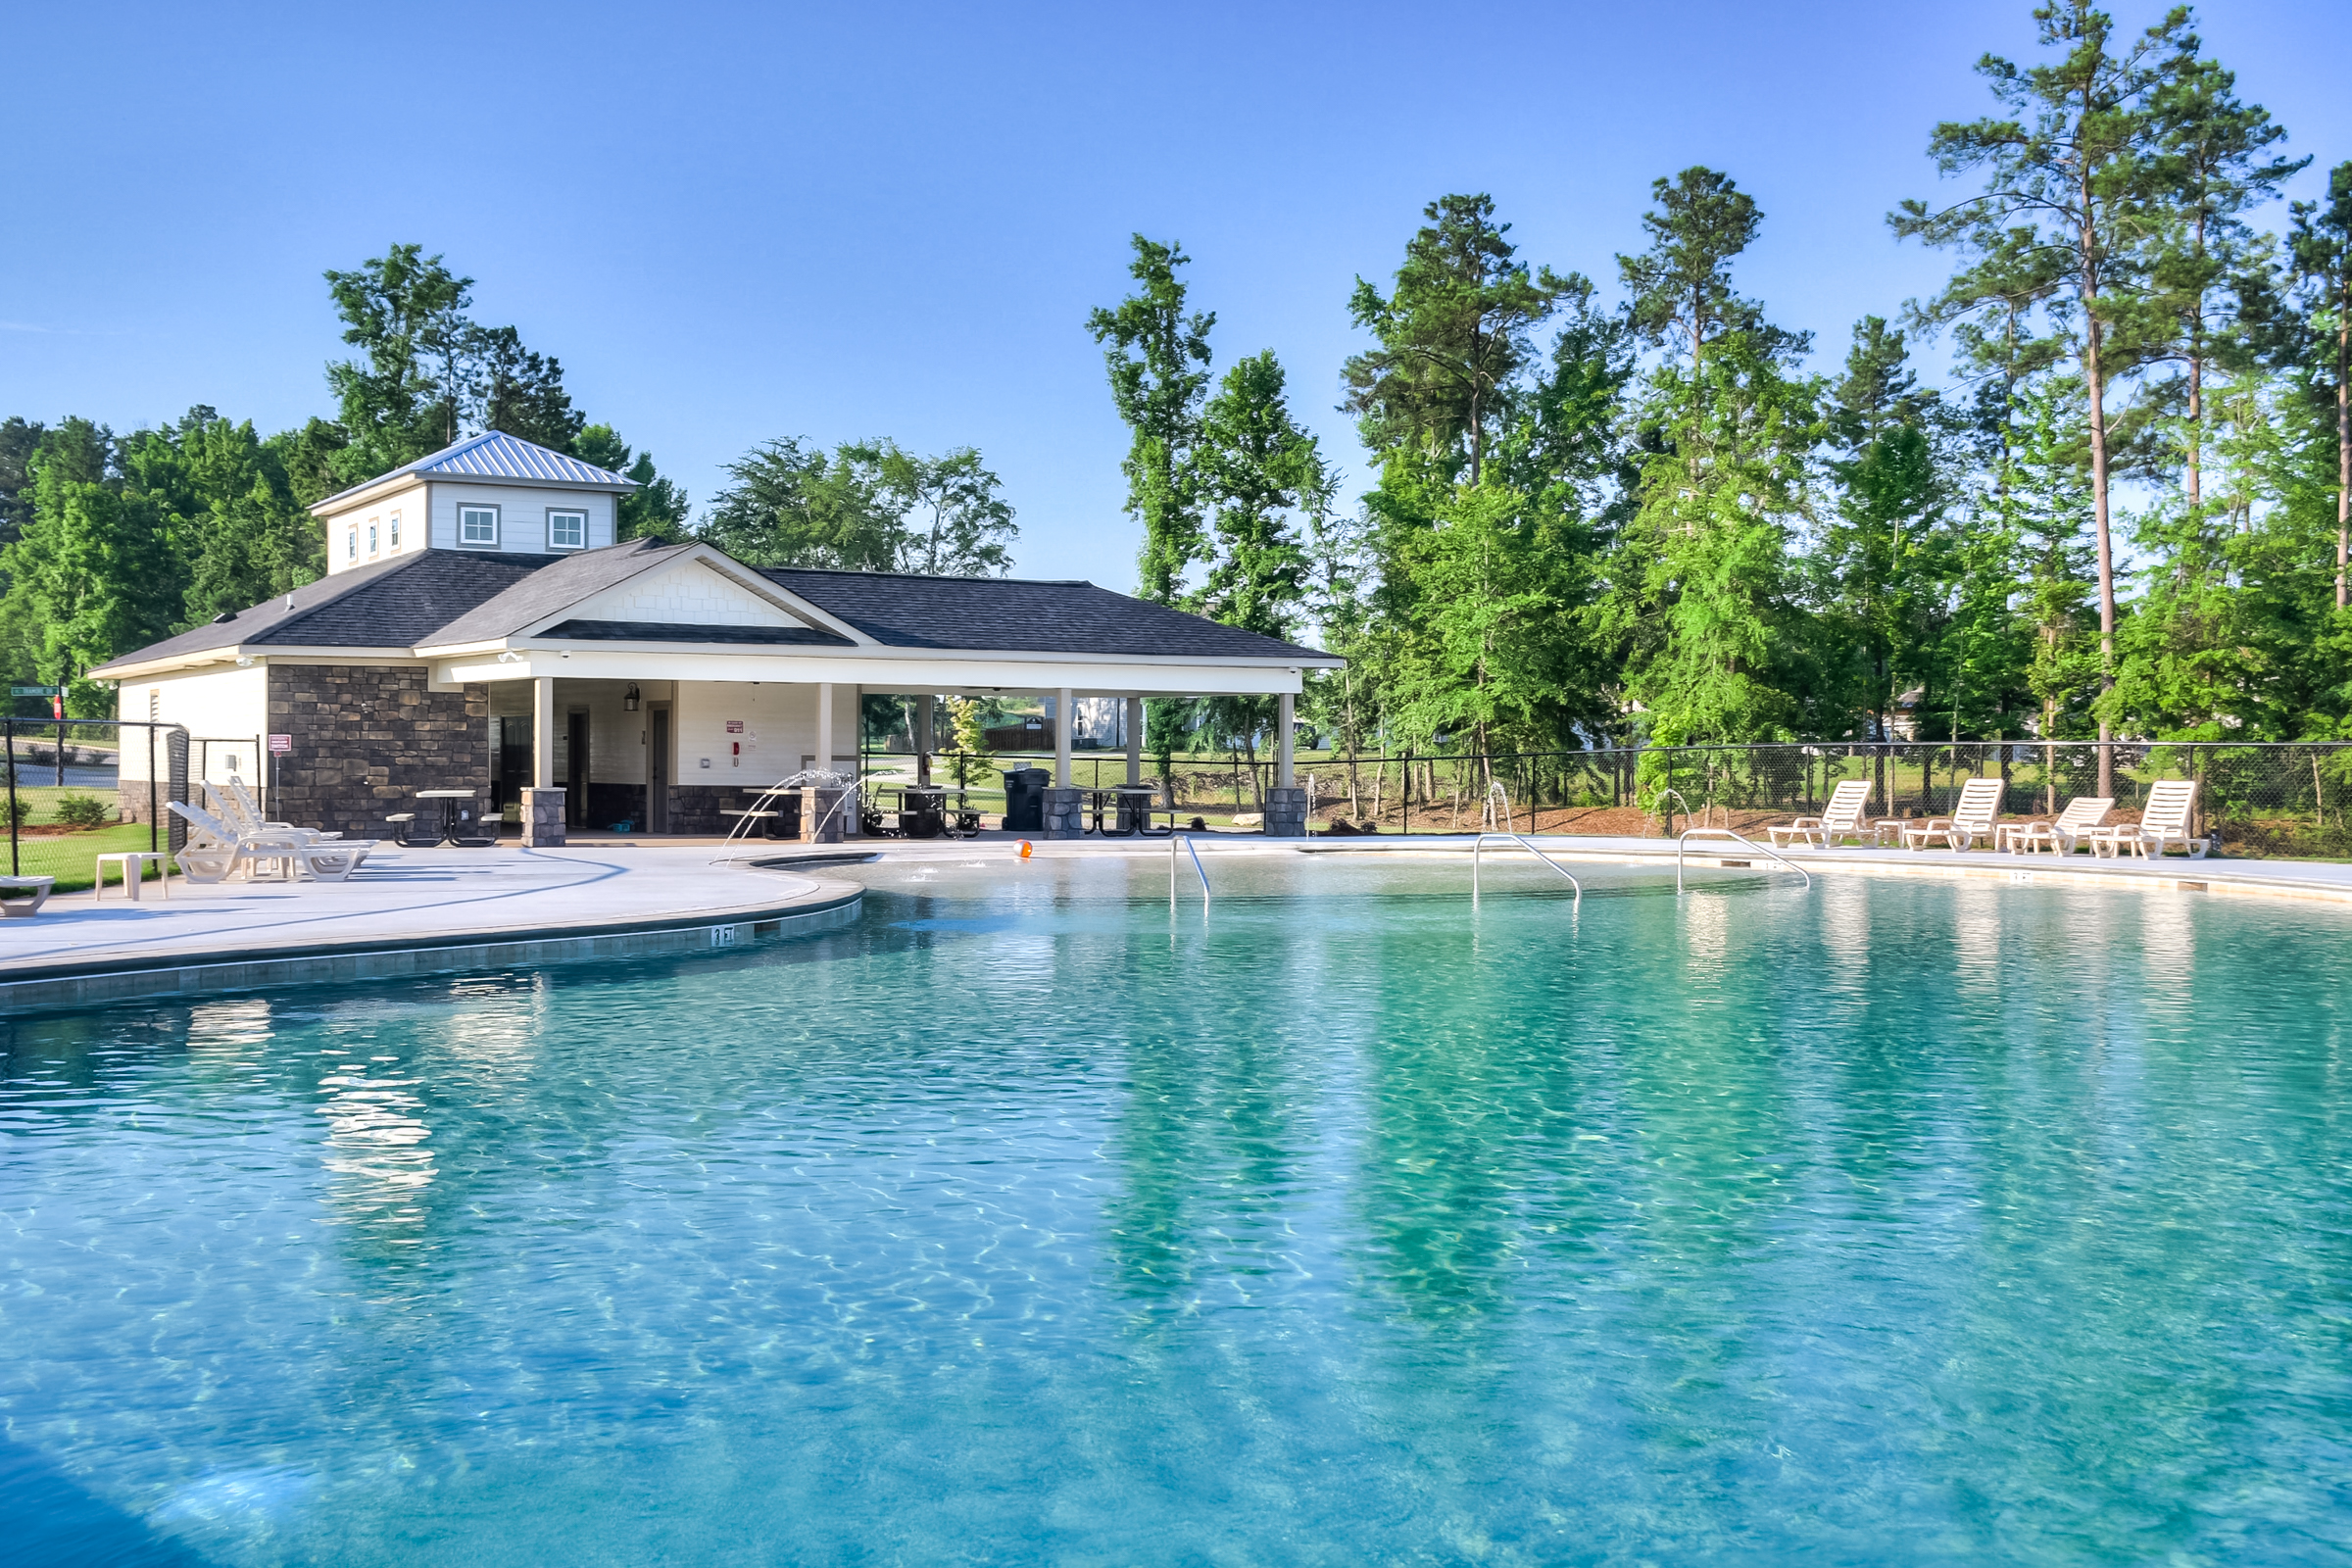 An image of the pool house at Kelarie.